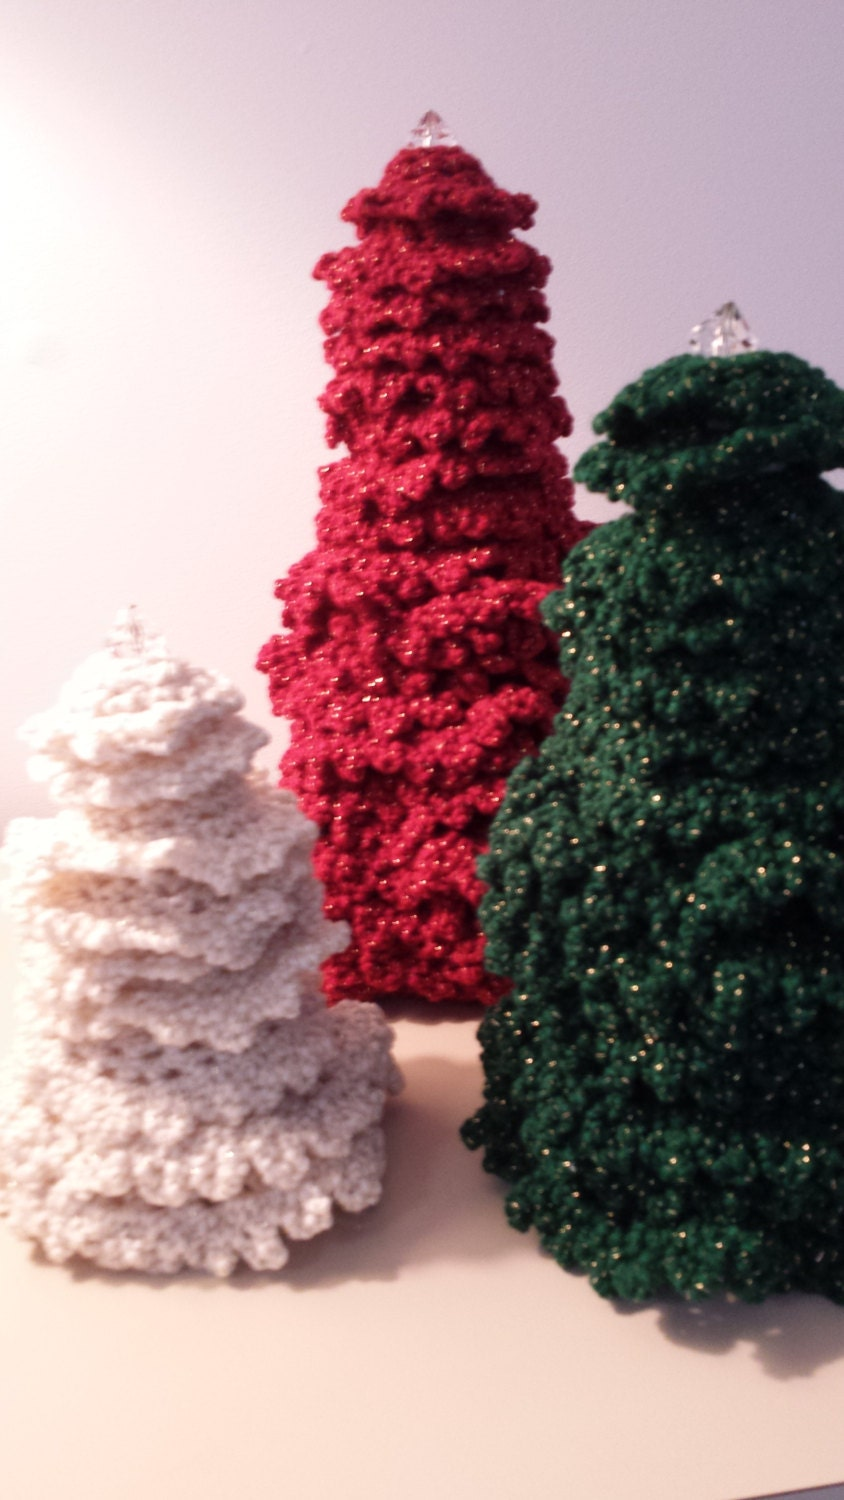 Christmas Tree Ornaments Crocheted - softtotouch